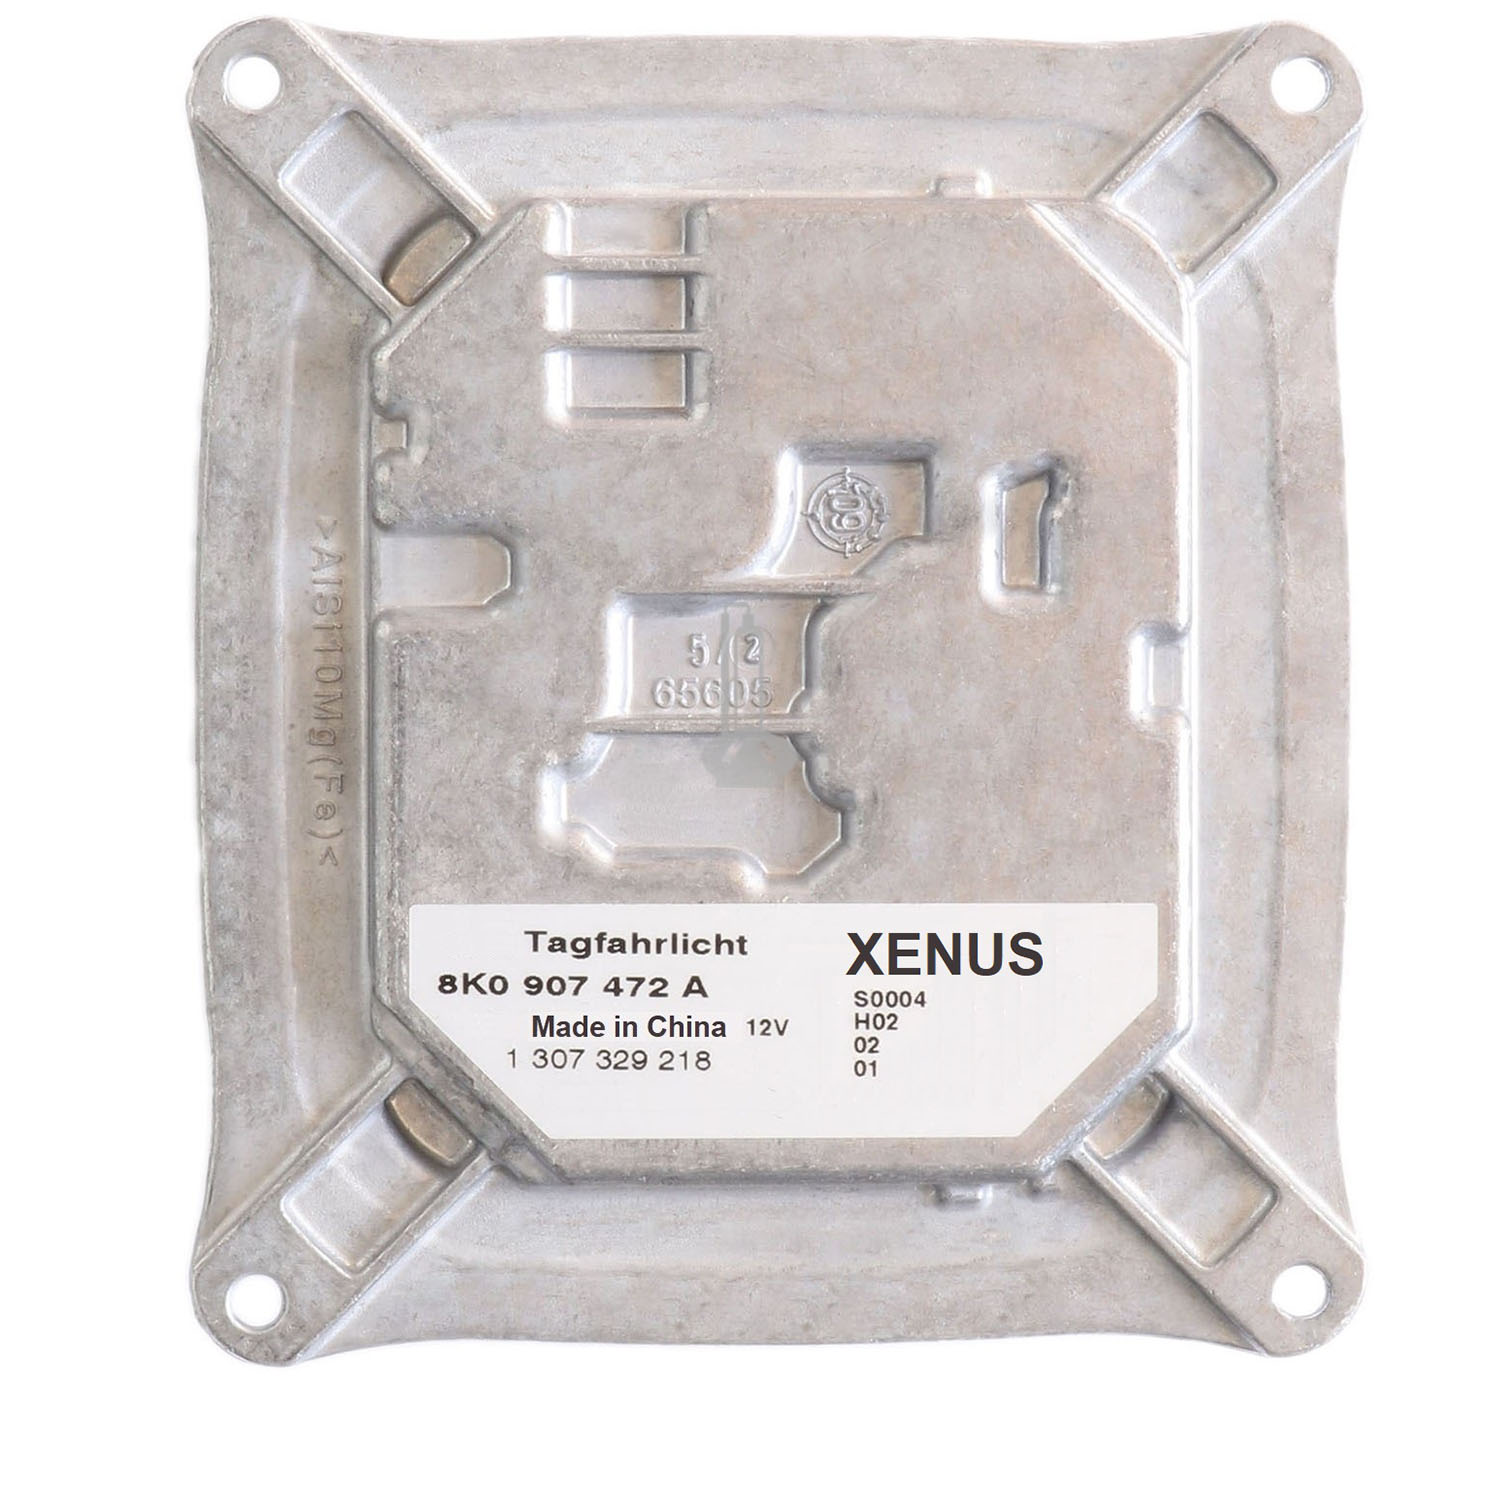 XENUS LED TFL Module 1 307 329 218 Daytime Running Light for Audi 8K0907472A AL Headlight Ballast